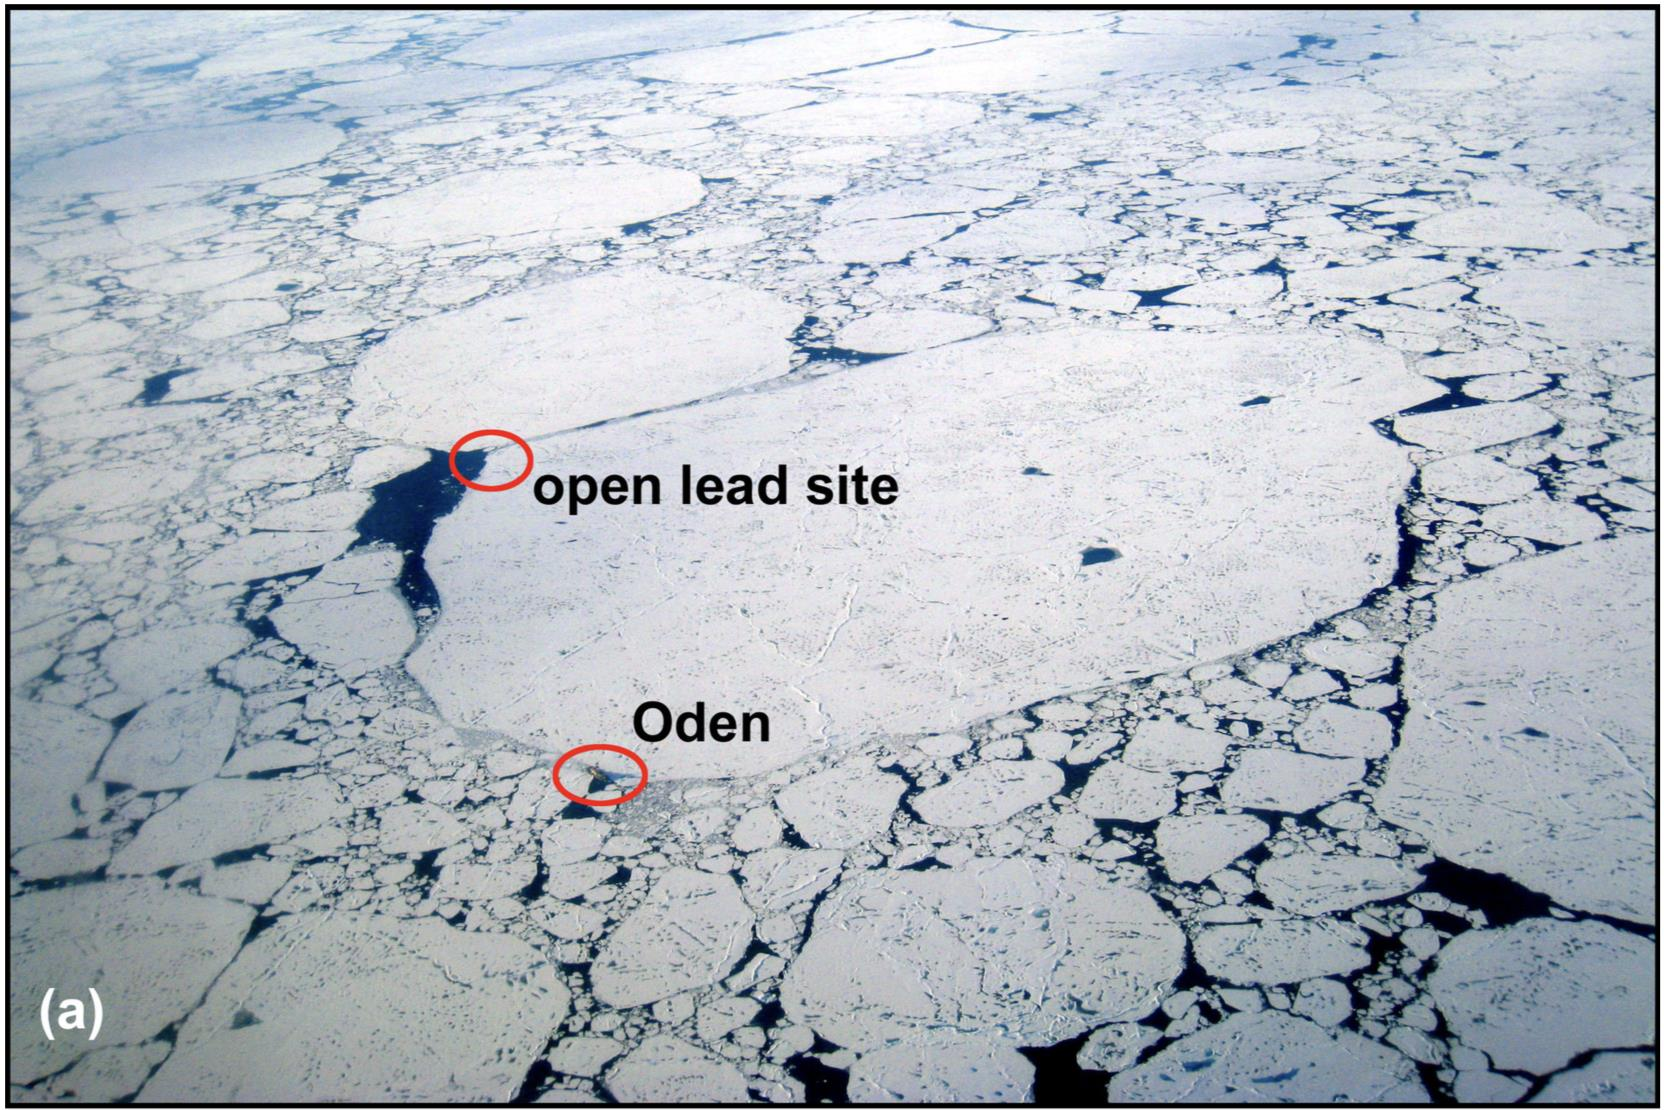 Oden and open lead site 2008.jpg